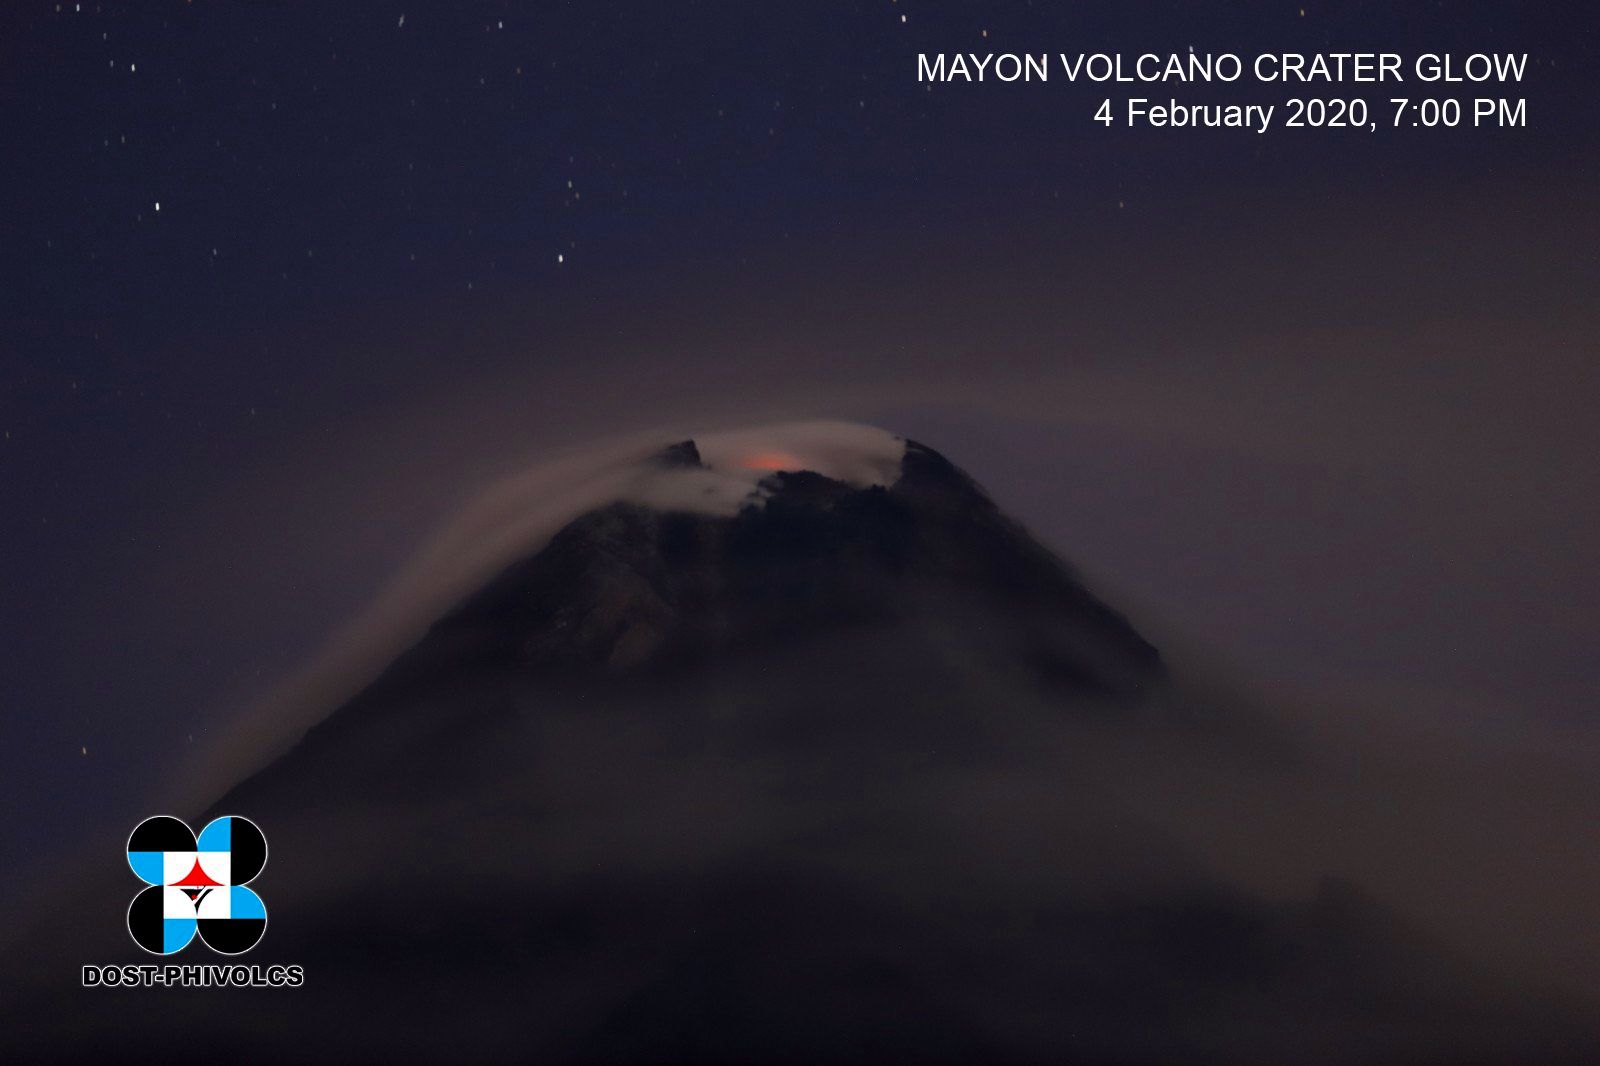 Mayon - night glow at the summit crest - photo 04.02.2020 / 19h / Phivolcs